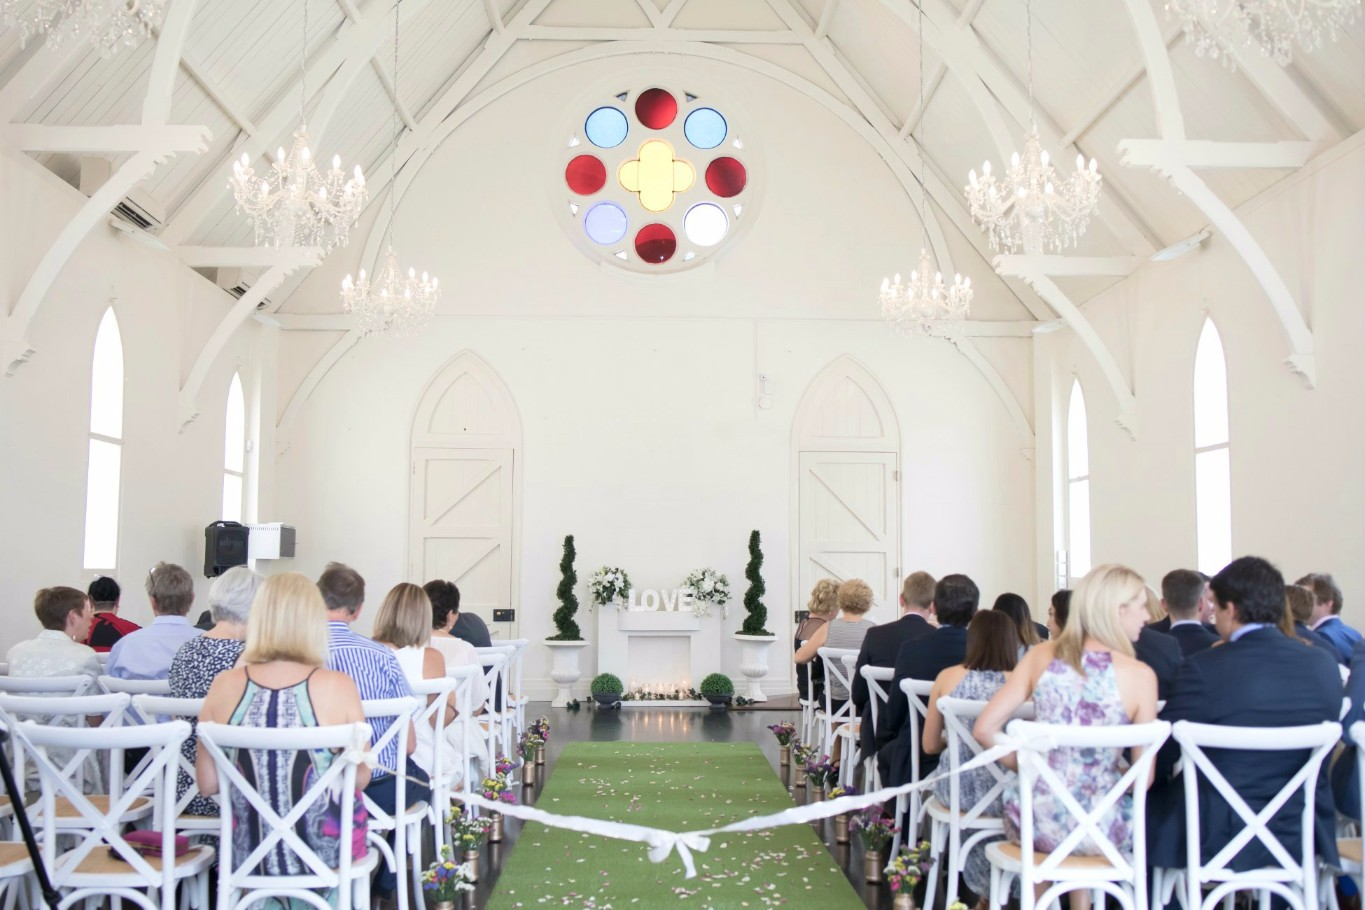 high church brisbane pretty white wedding church simply rose petals wedding rose petal toss beautiful wedding flower aisle